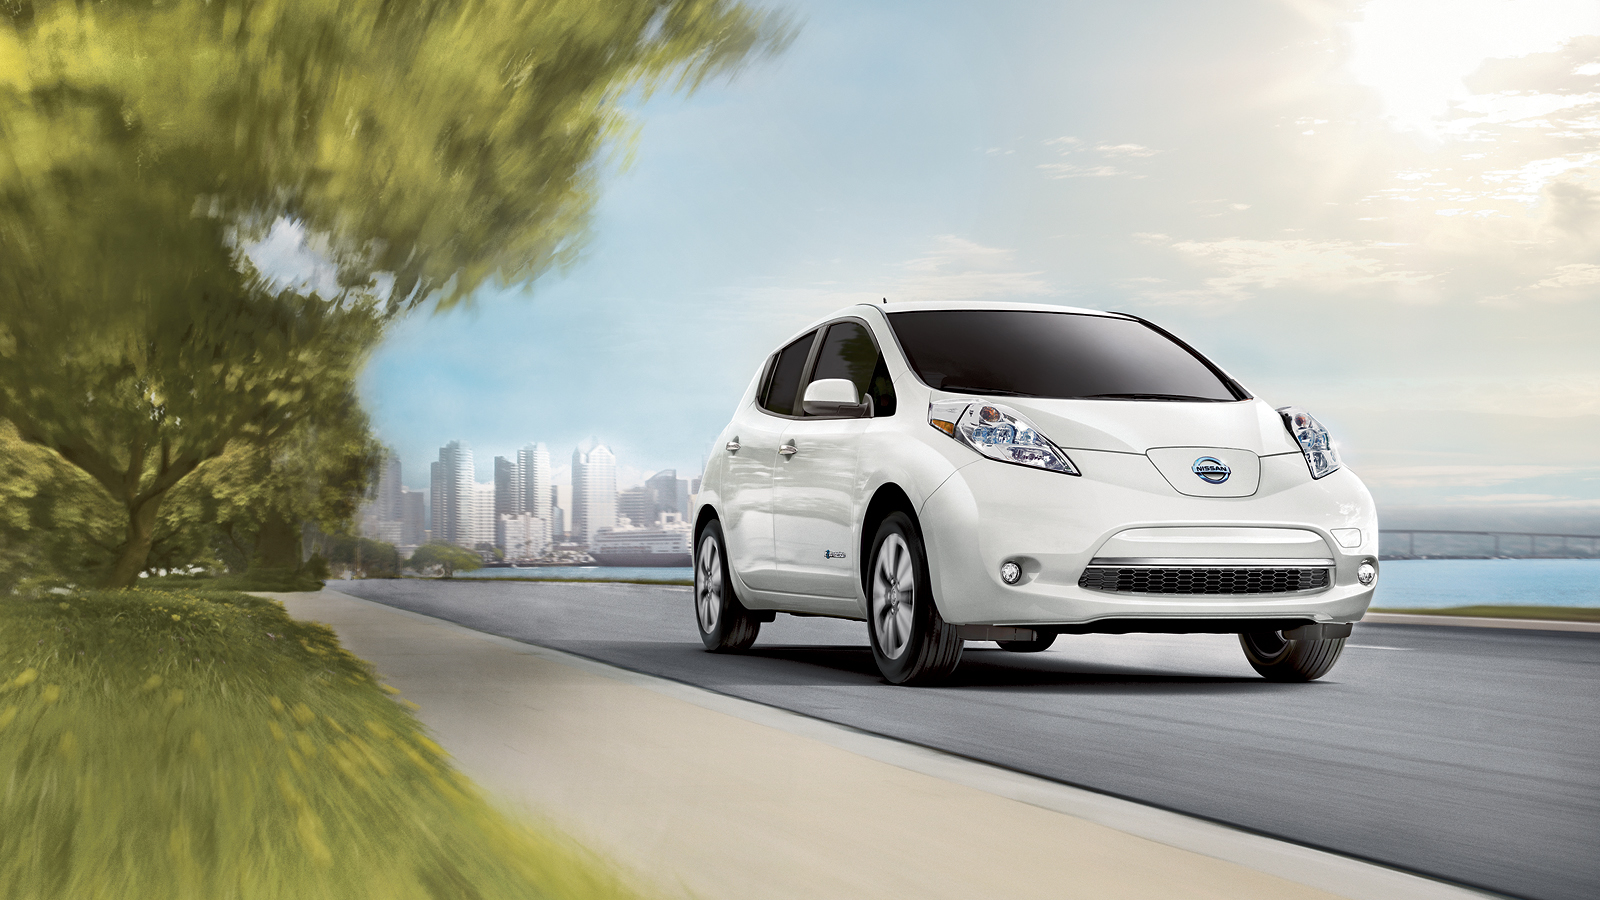 When It Comes To Purely Electric Vehicles S Difficult Top The Nissan Leaf Compact Quiet And Can Get You Where Re Going